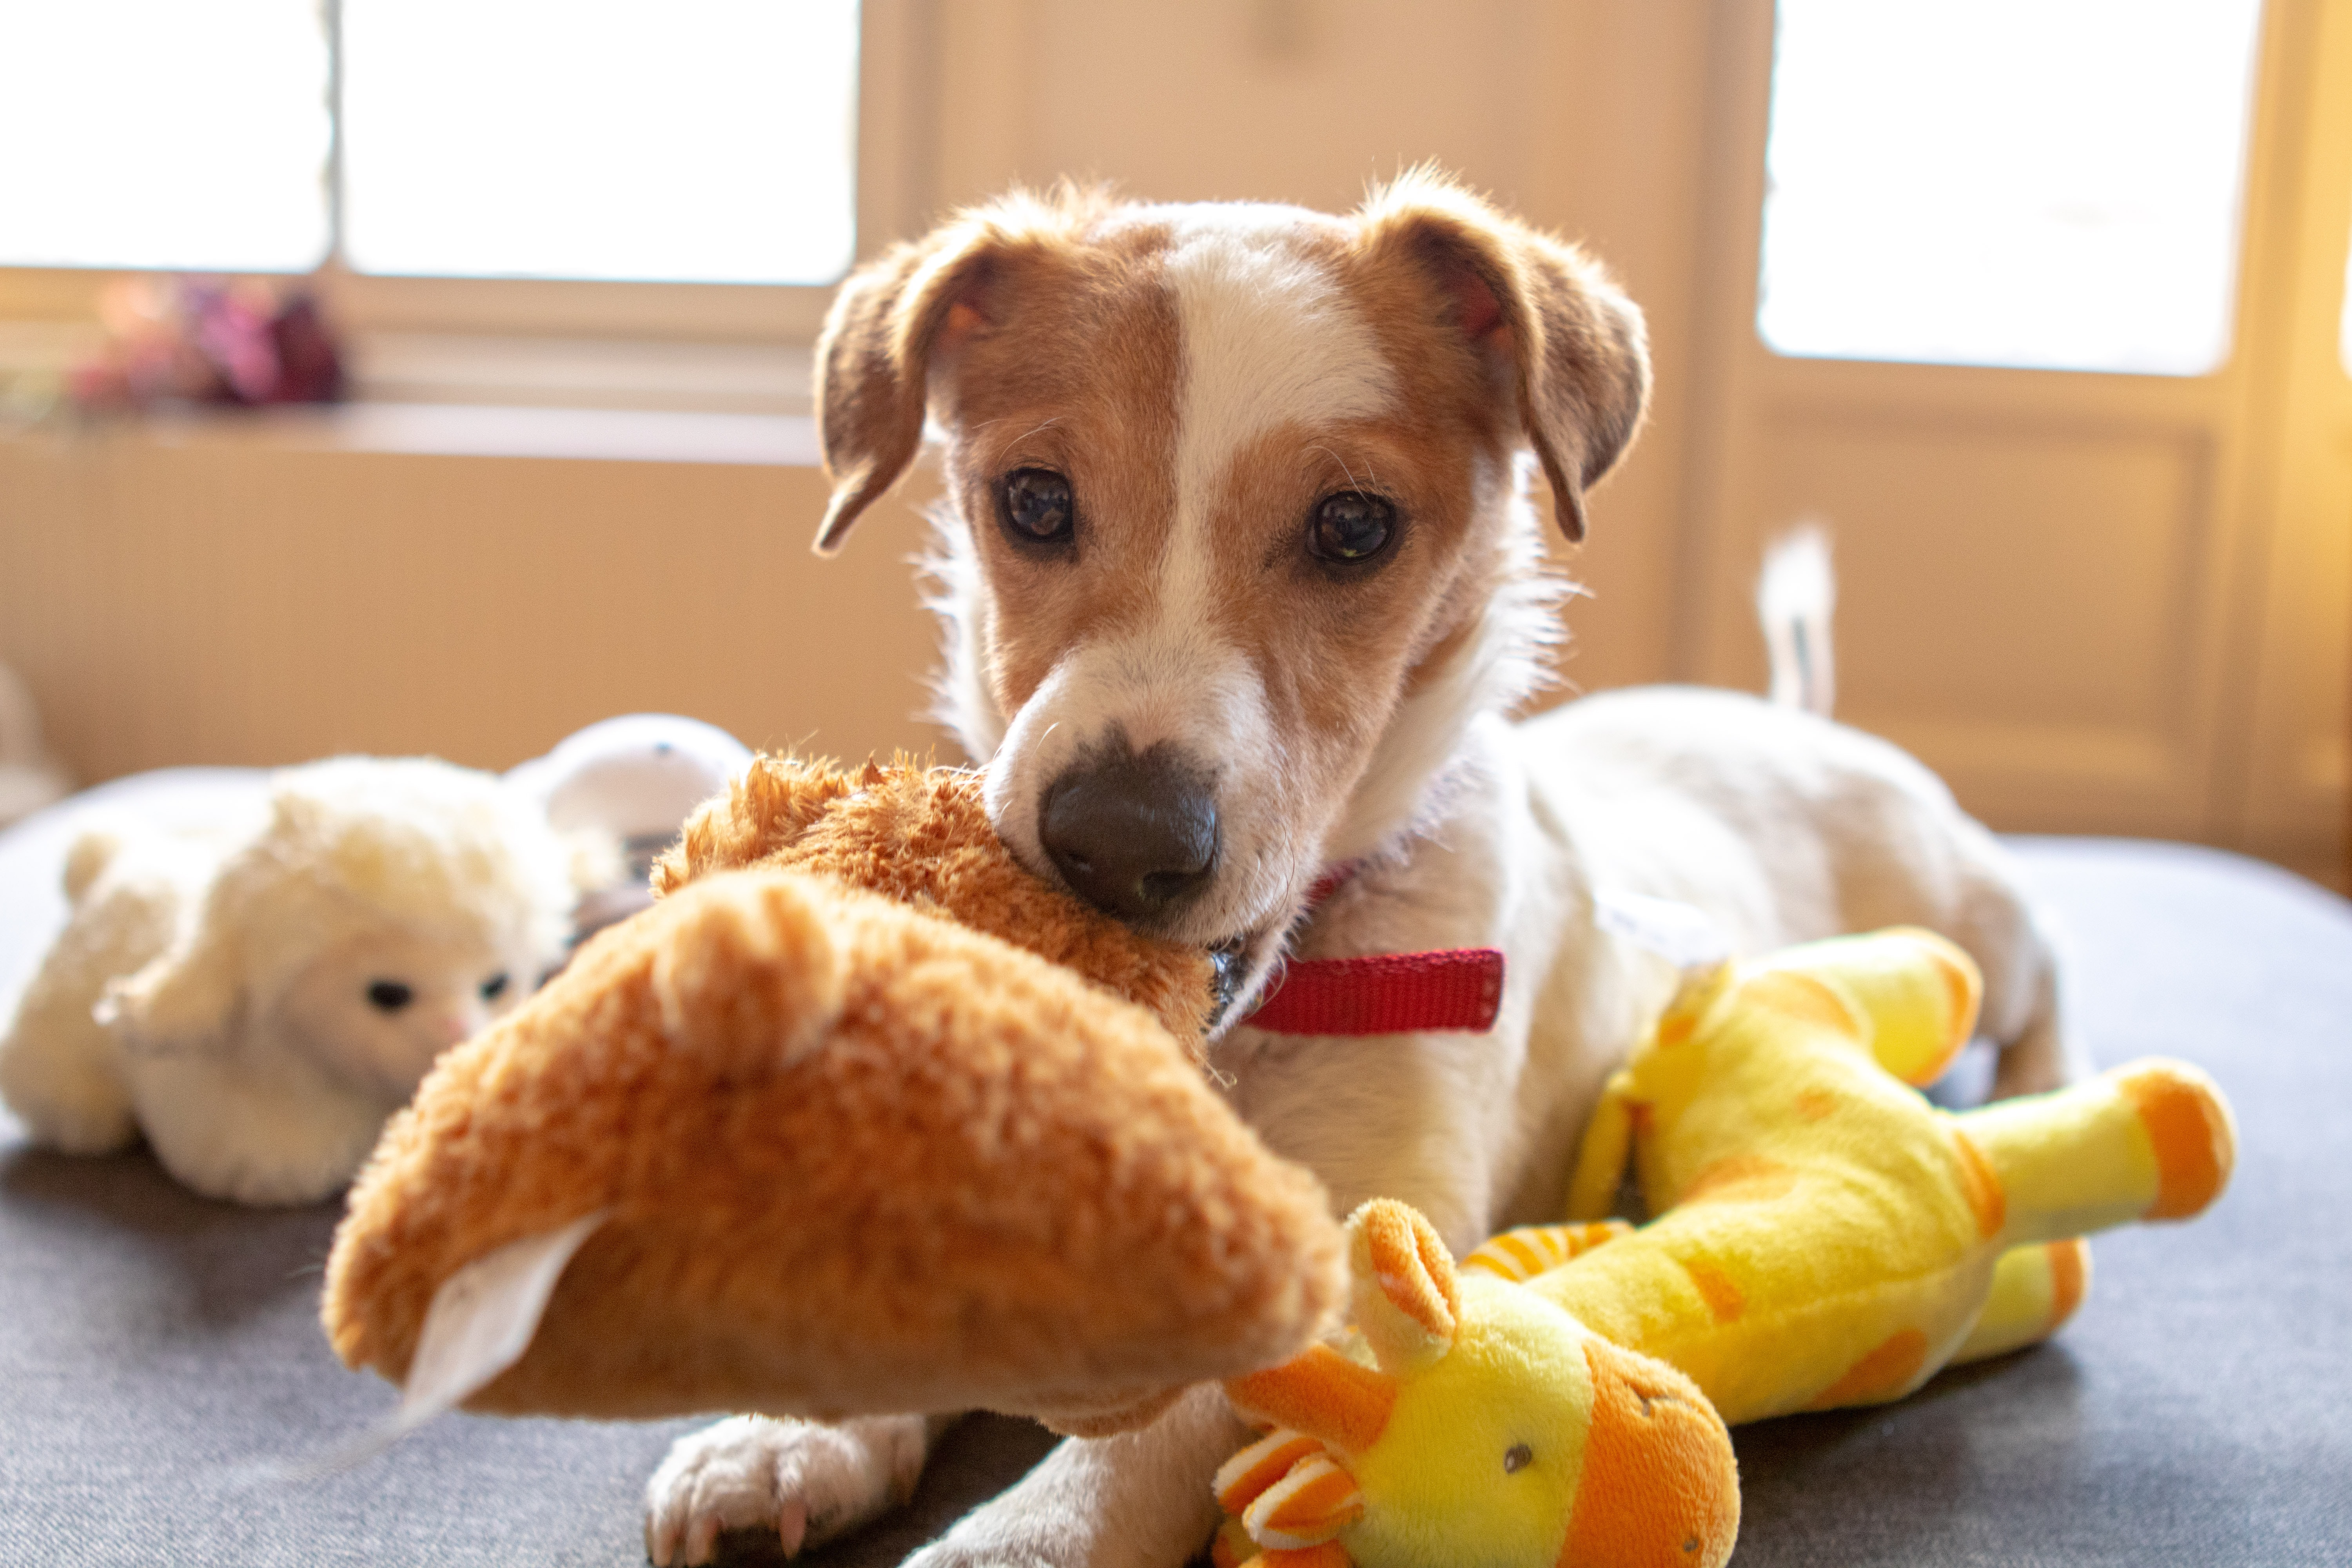 eco-friendly dog toys - dog sitting on bed with lots of soft toys